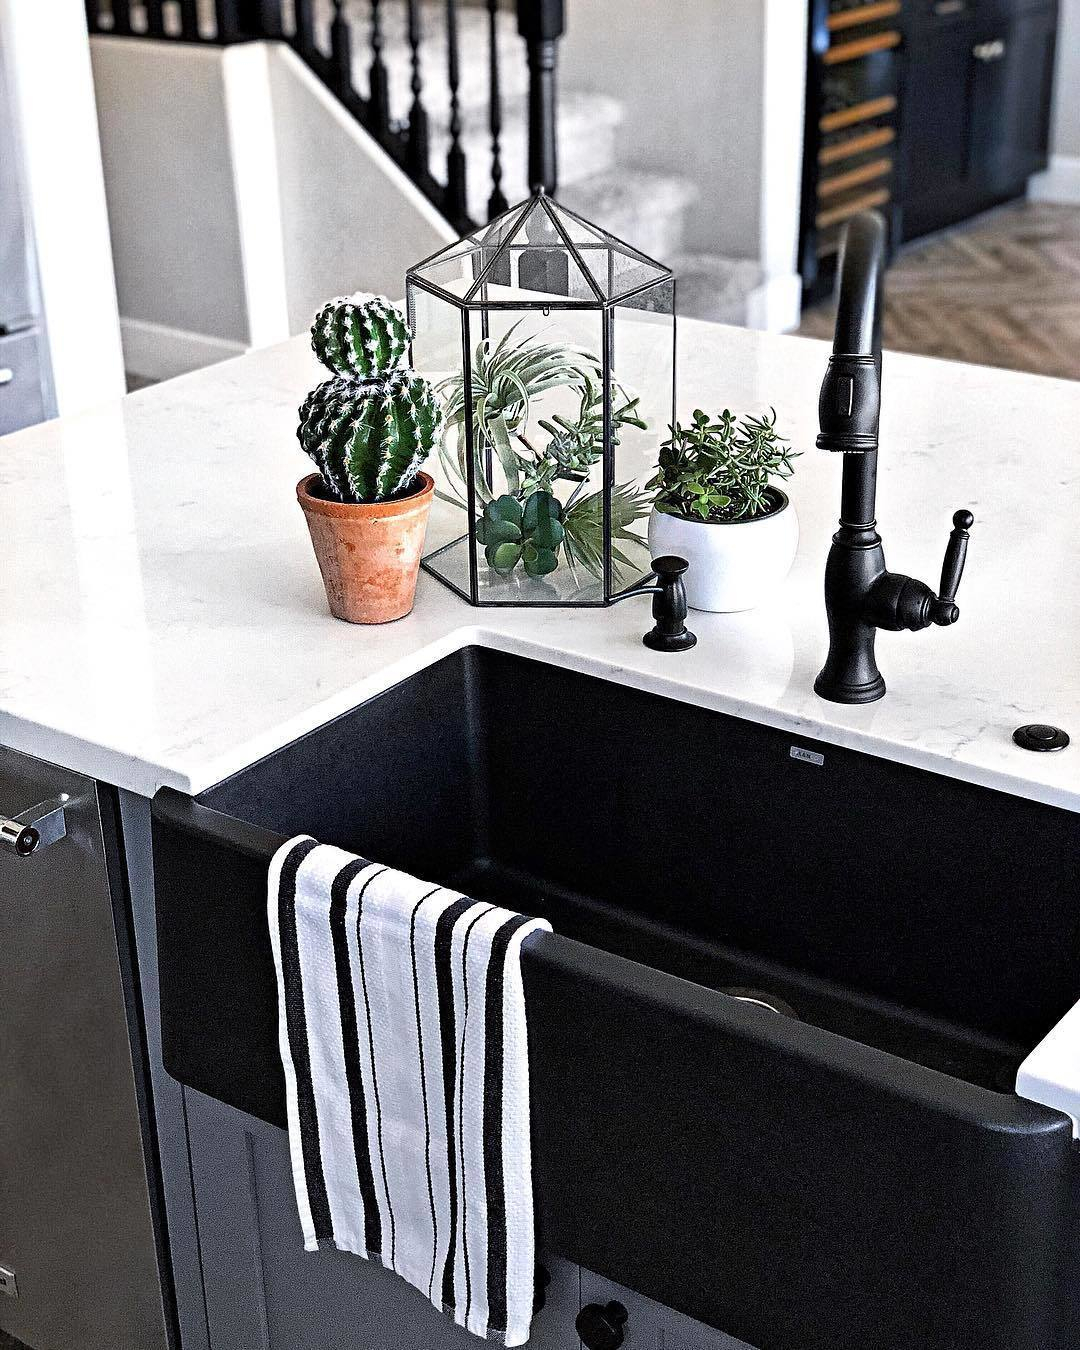 newport brass traditional single hole pulldown kitchen faucet with side lever in oil rubbed bronze - the ultimate guide to luxury plumbing by the delight of design